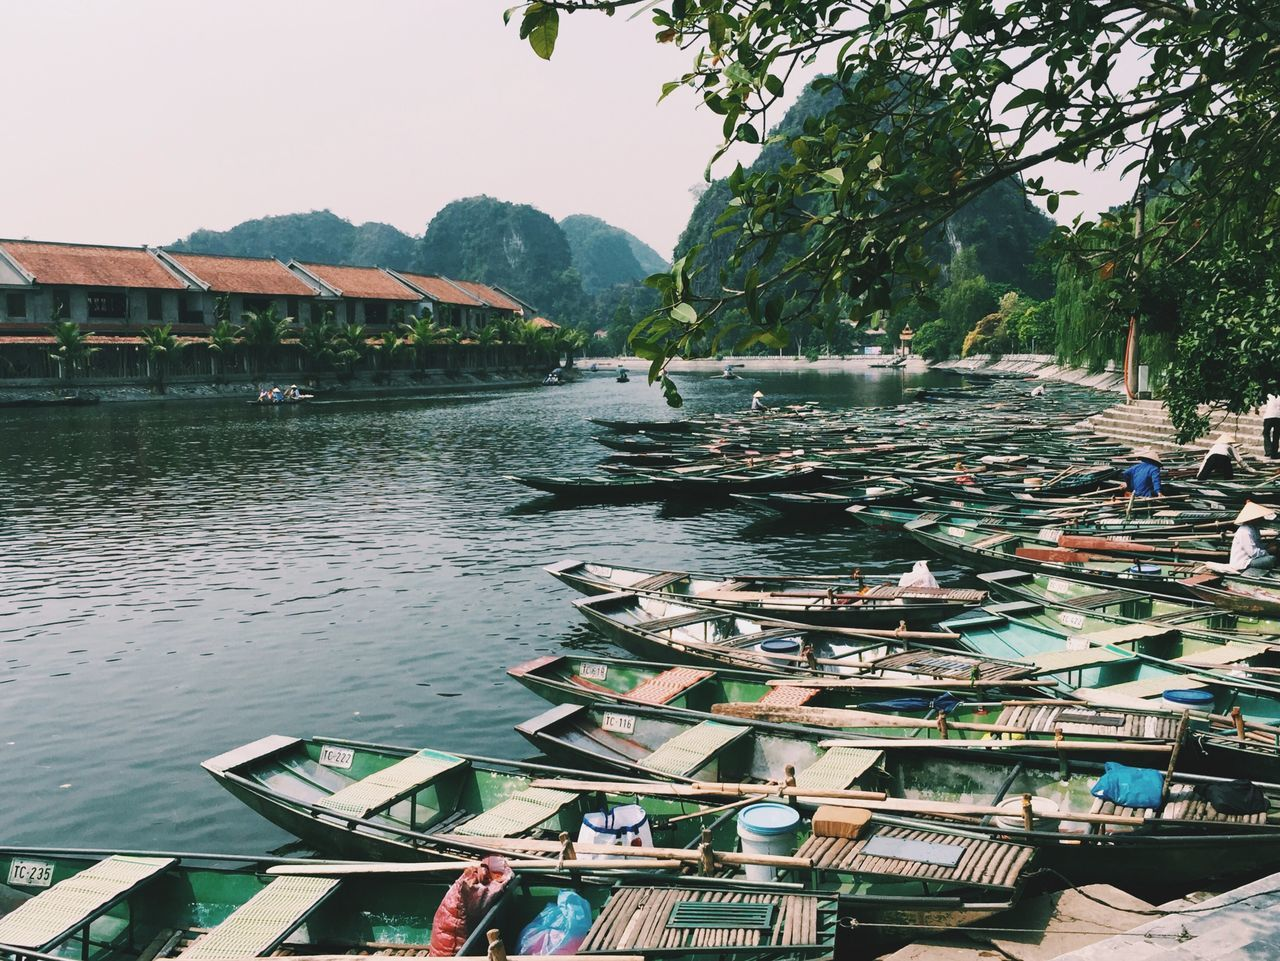 in Vietnam. Traveling Travel Ninhbinh Vietnam Wanderlust River Boats Mountains Floating Saigonese